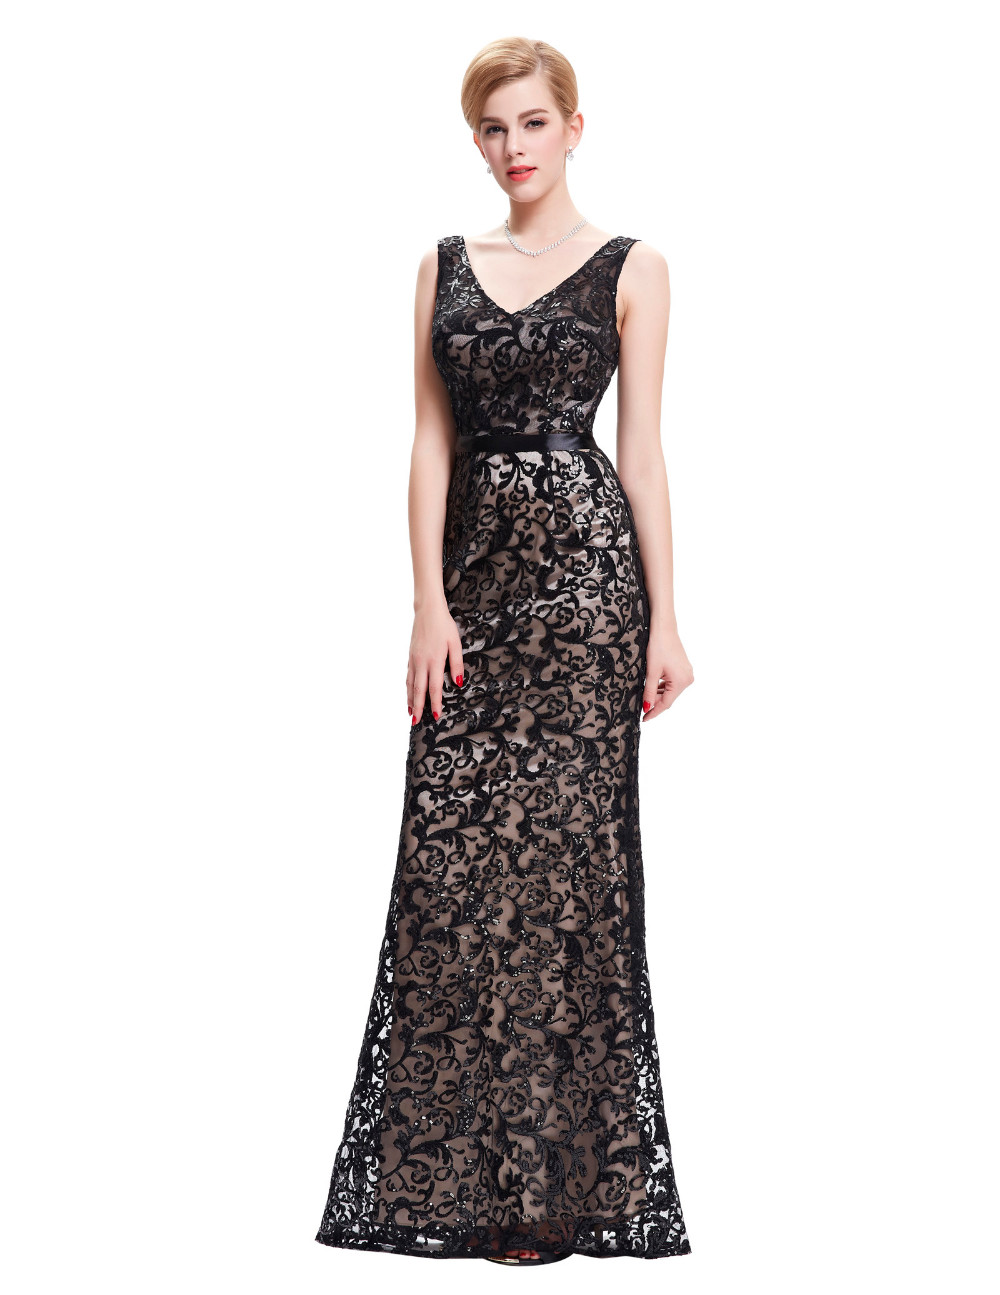 Long Evening Dress Kate Kasin Double V Neck Beaded Evening Gowns Lace Mother of the Bride Dresses Black Formal Prom Dress 0034 8